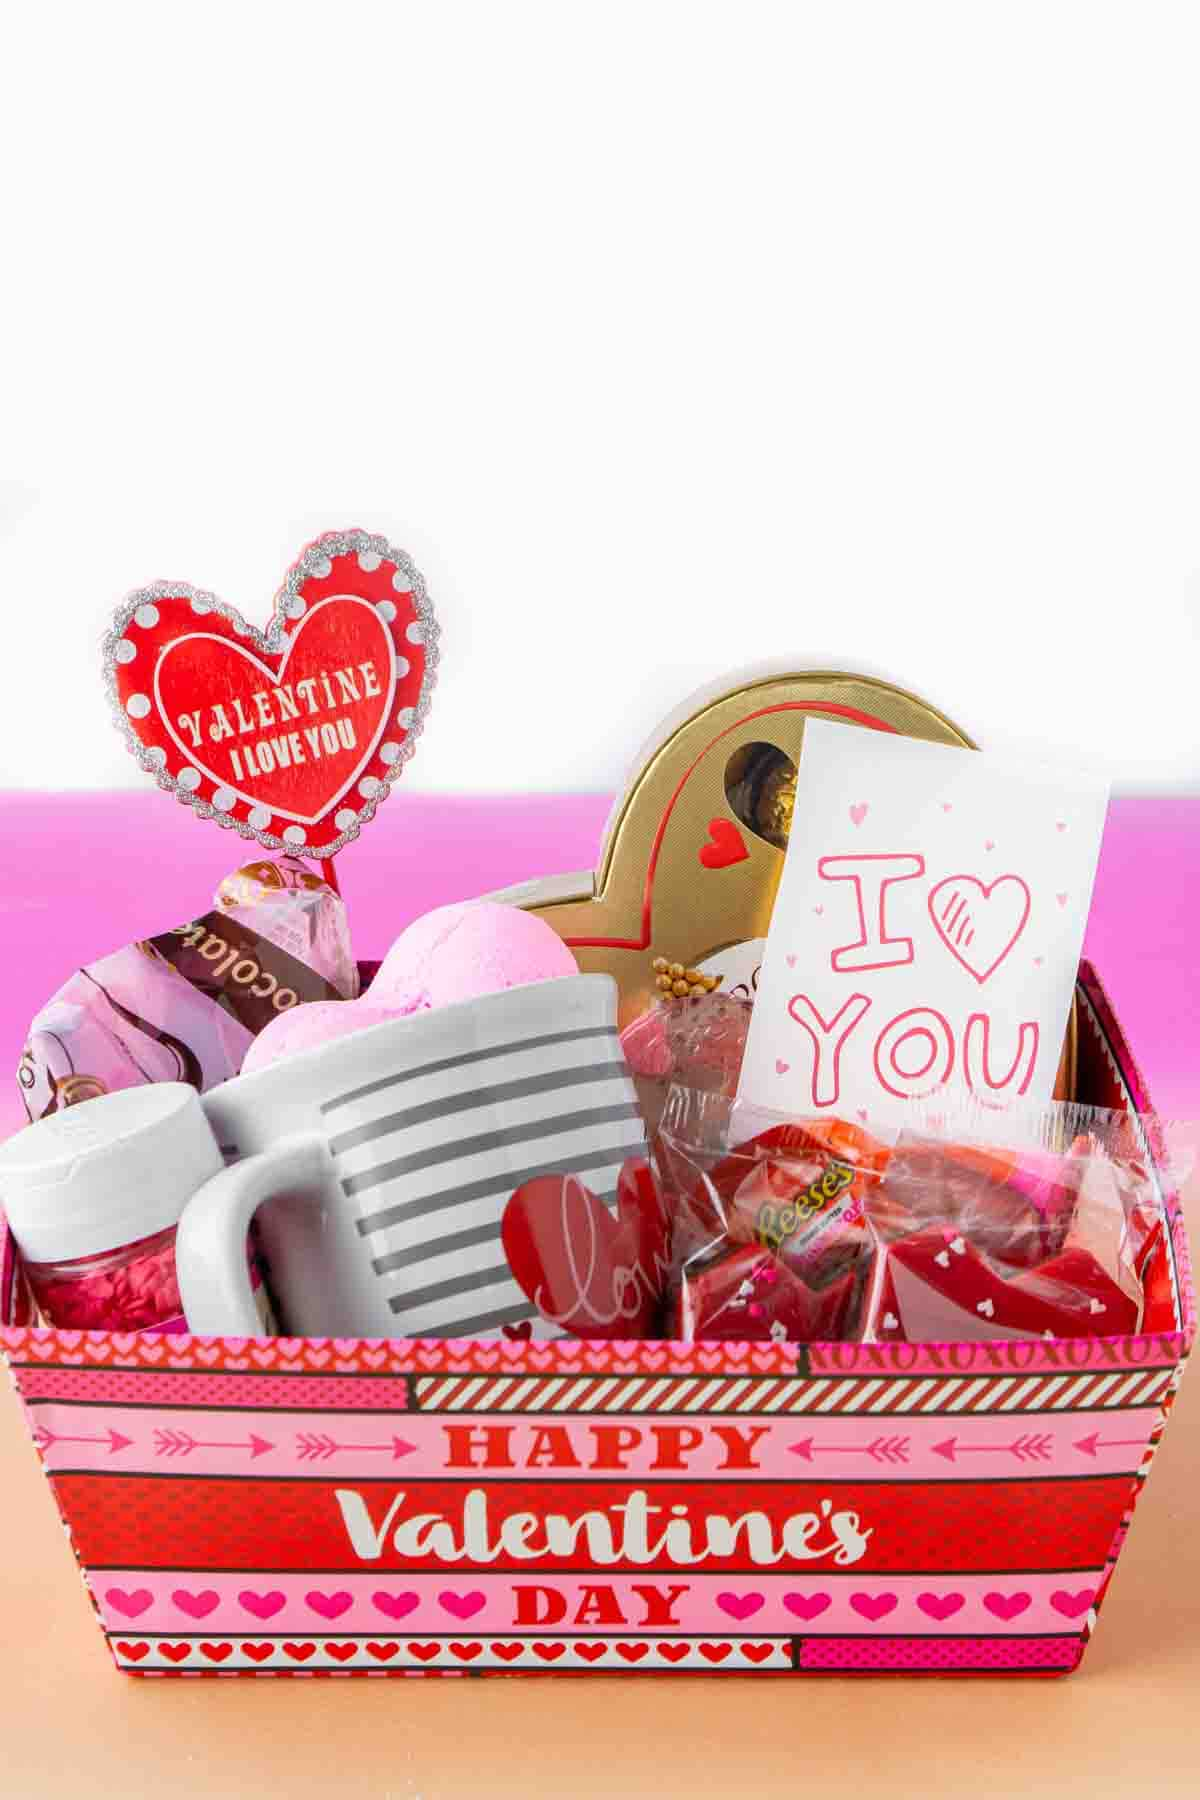 Valentines Day basket with candy and gifts inside